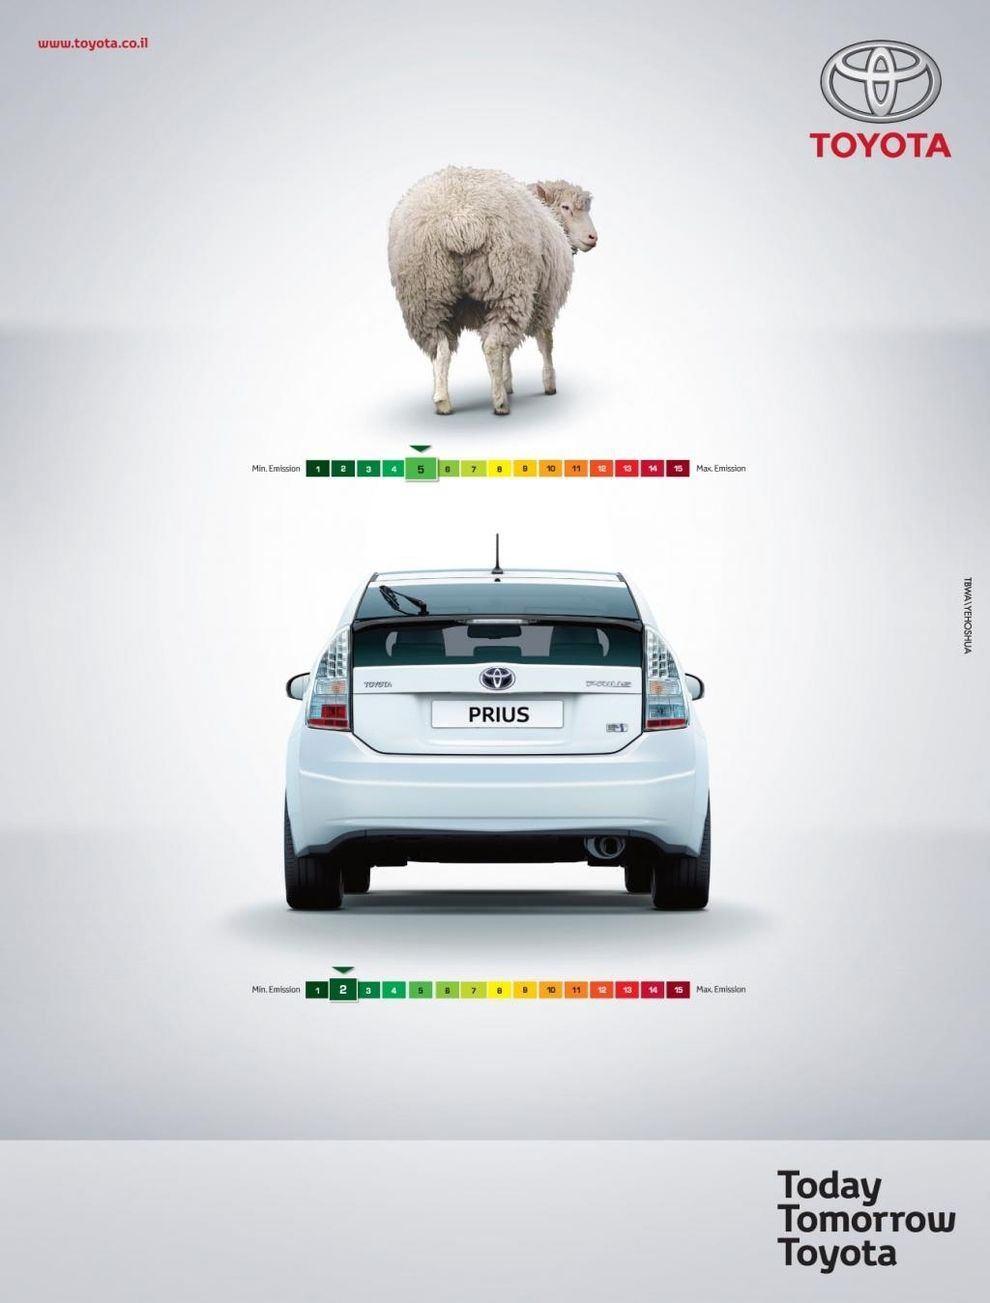 A Good Example Of Green Marketing And Very Clever Ad By Toyota I D Like To See The Actual Data That Proves Prius Has Less Emissions Than Sheep But